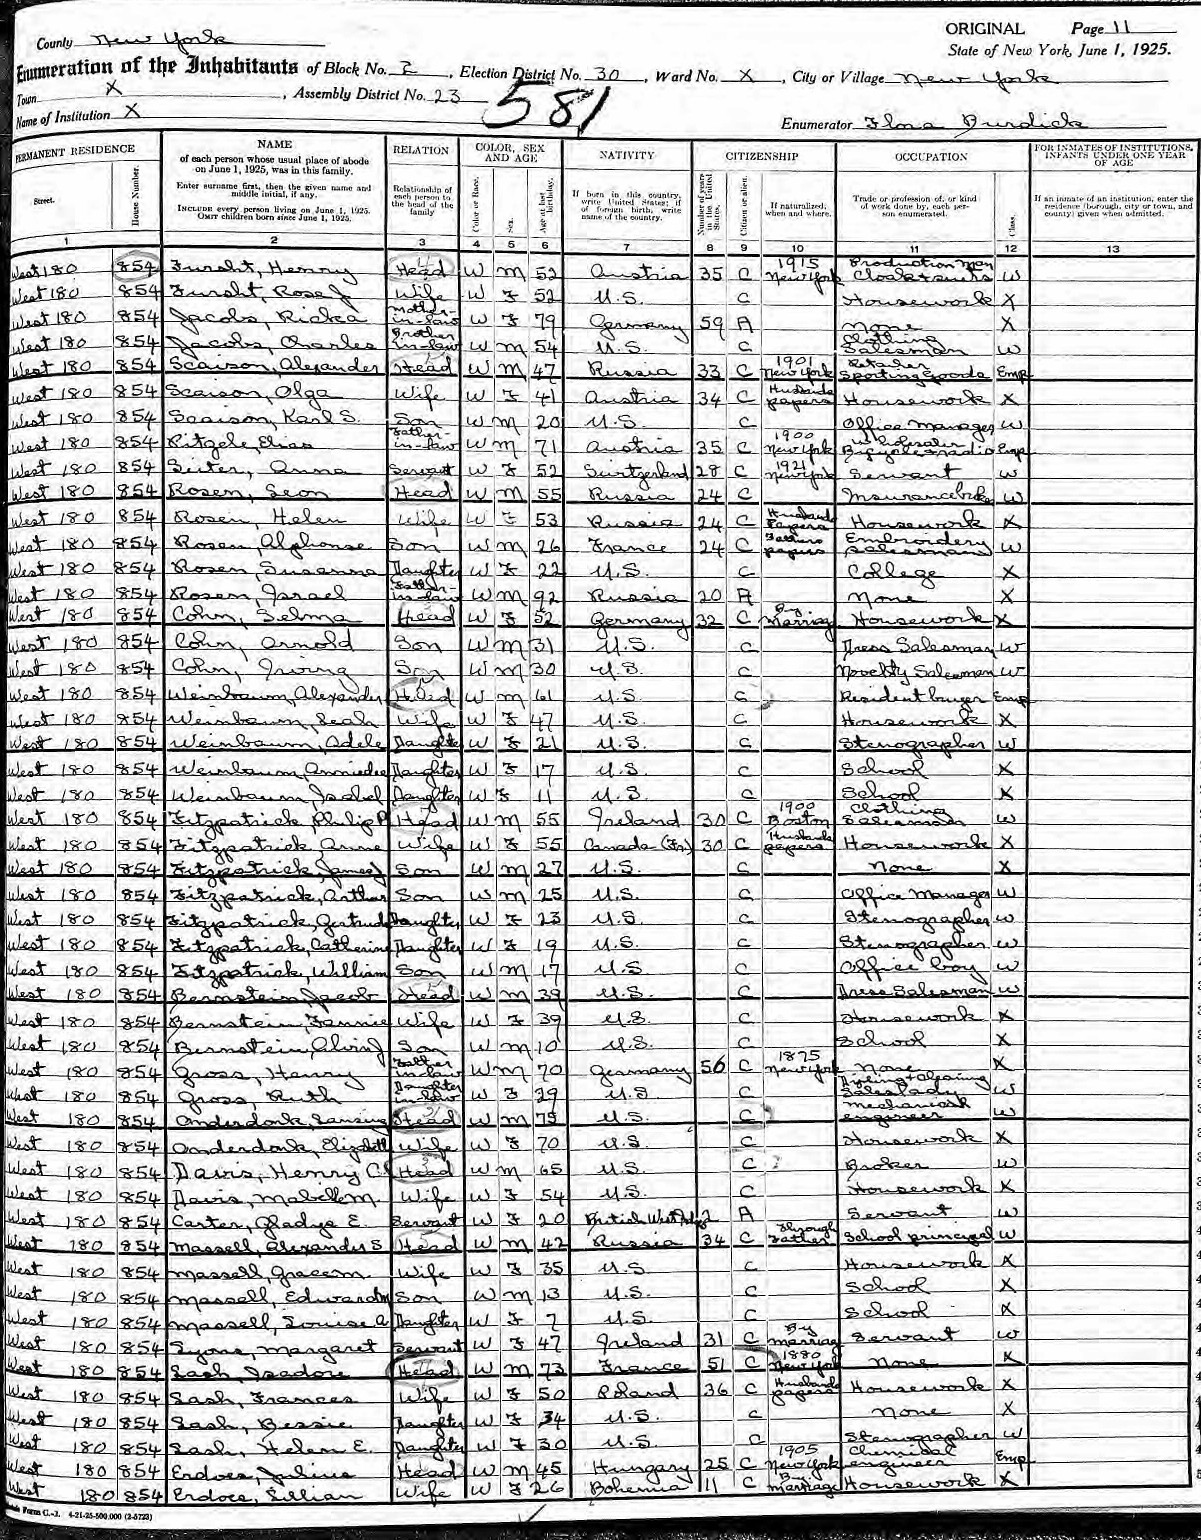 1925 New York State Census of Alexander Massell Family